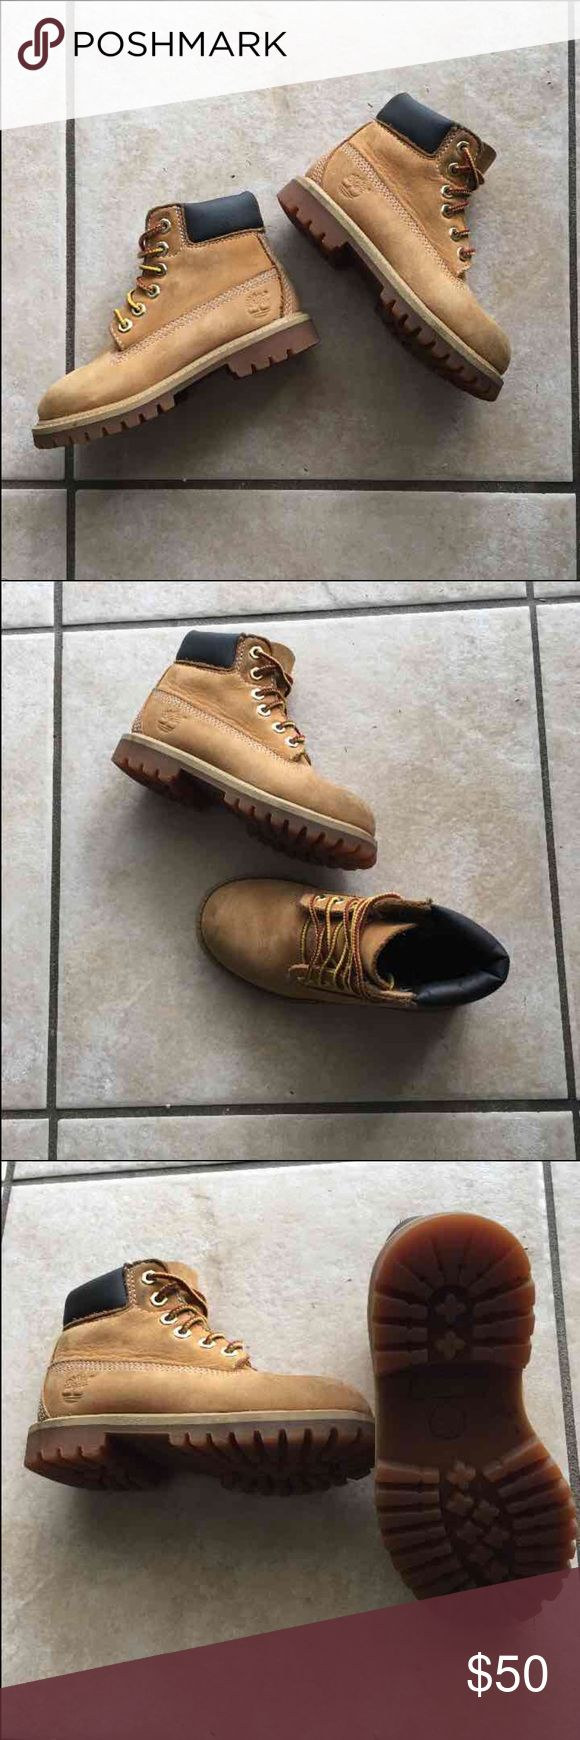 Timberland Boots Kids Timberland Boots size 9. Great Condition!!! Timberland Shoes Boots